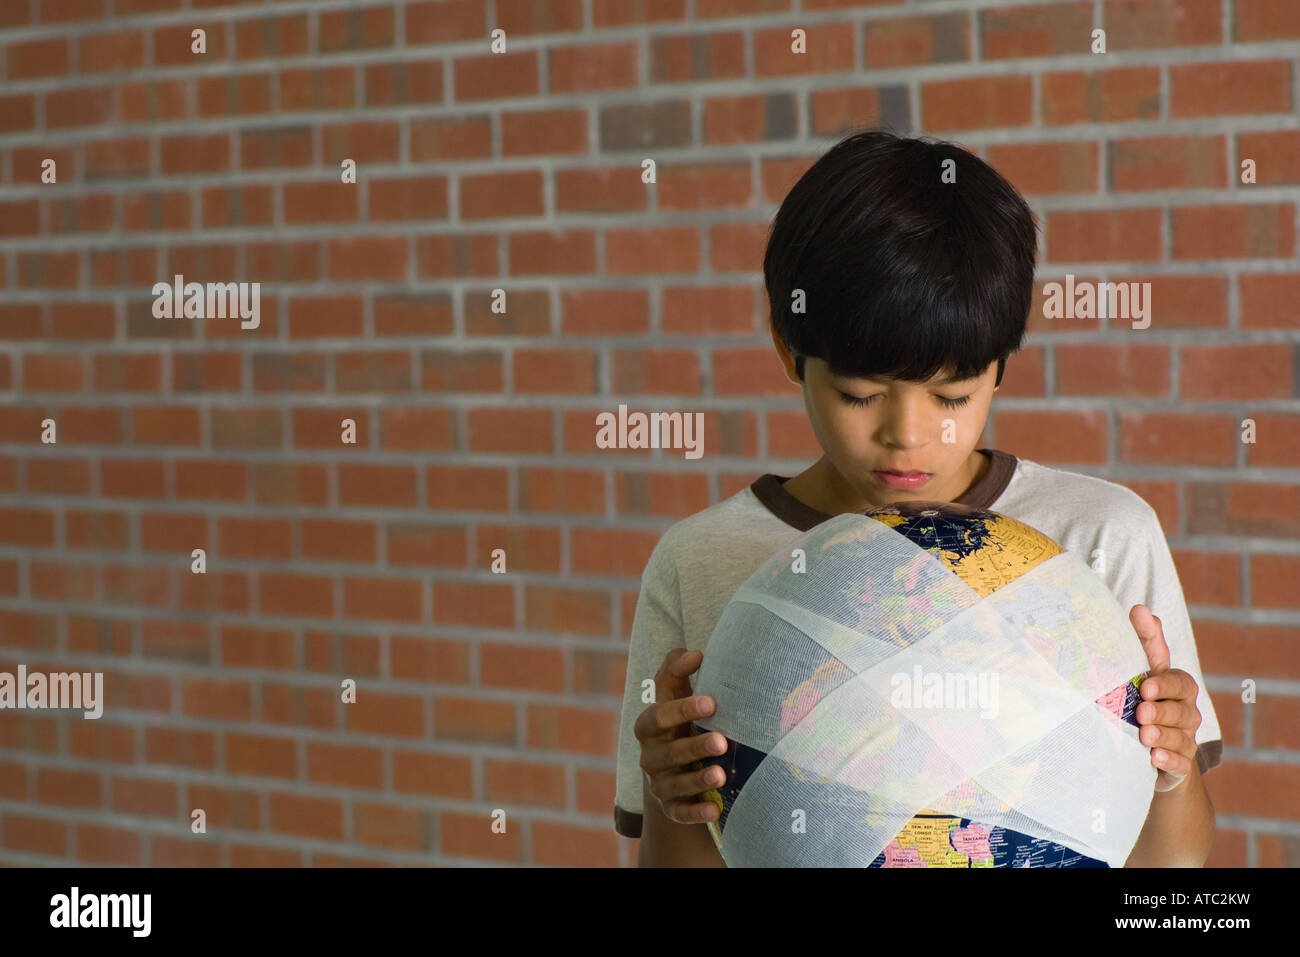 Boy holding bandaged globe, front view - Stock Image